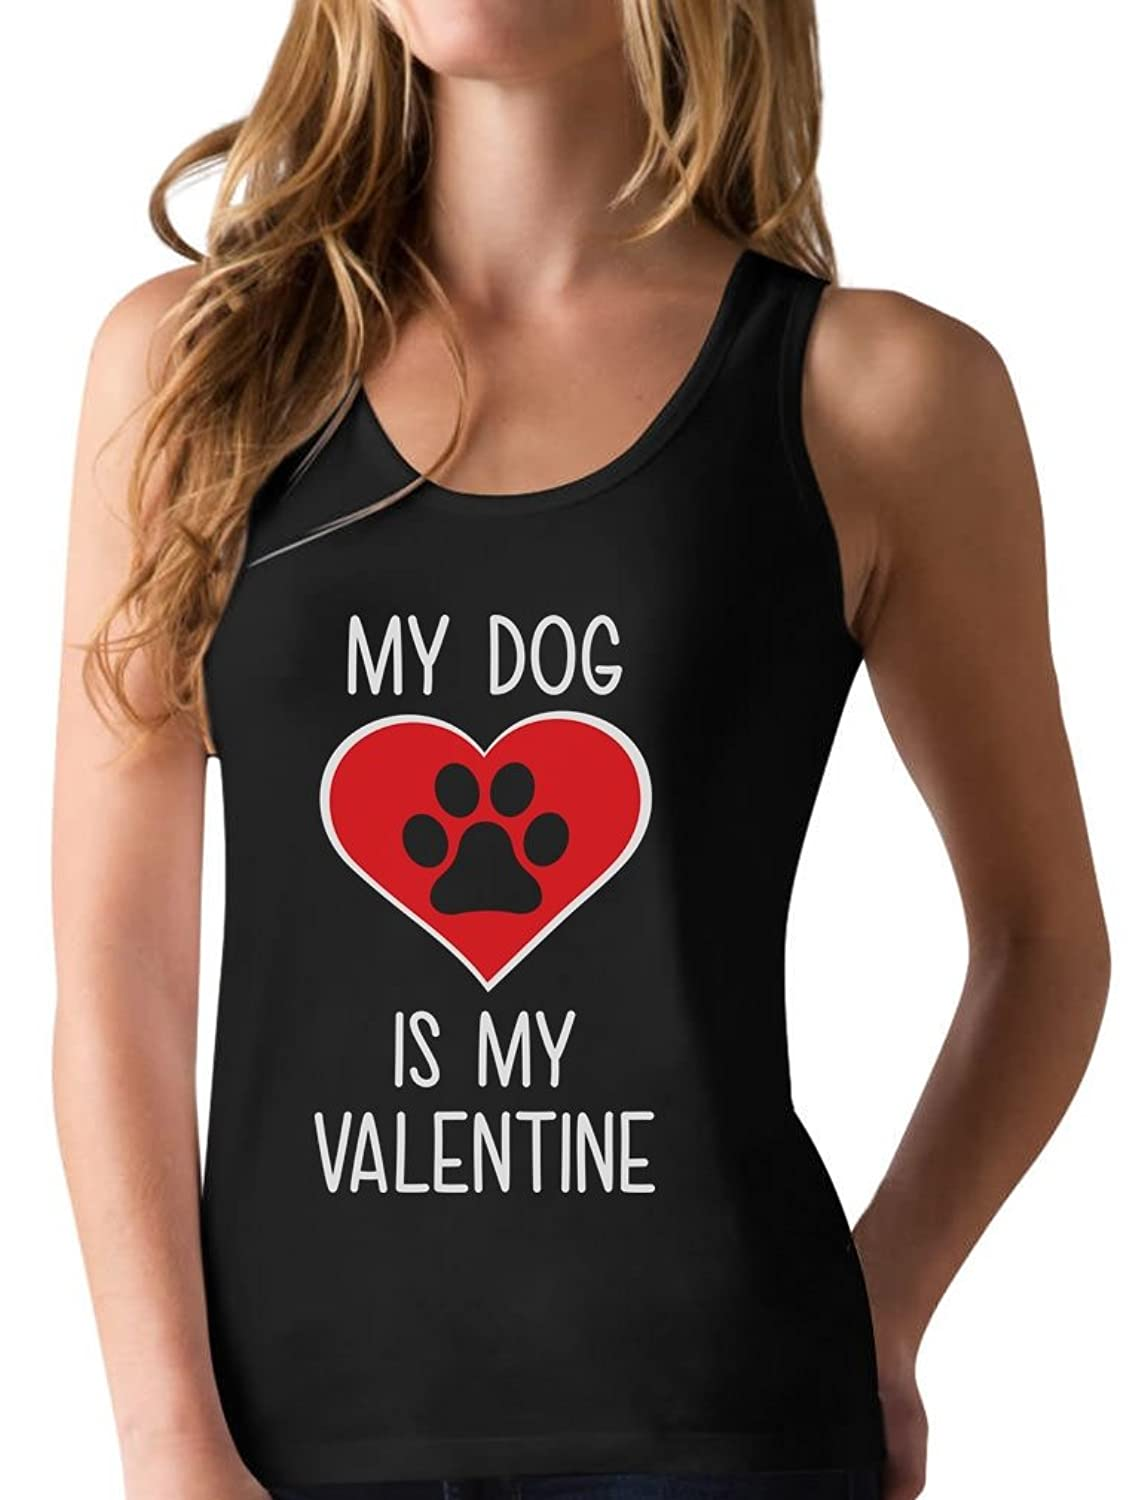 My Dog Is My Valentine - Valentine's Day Gift for Dog Lover Racerback Tank Top